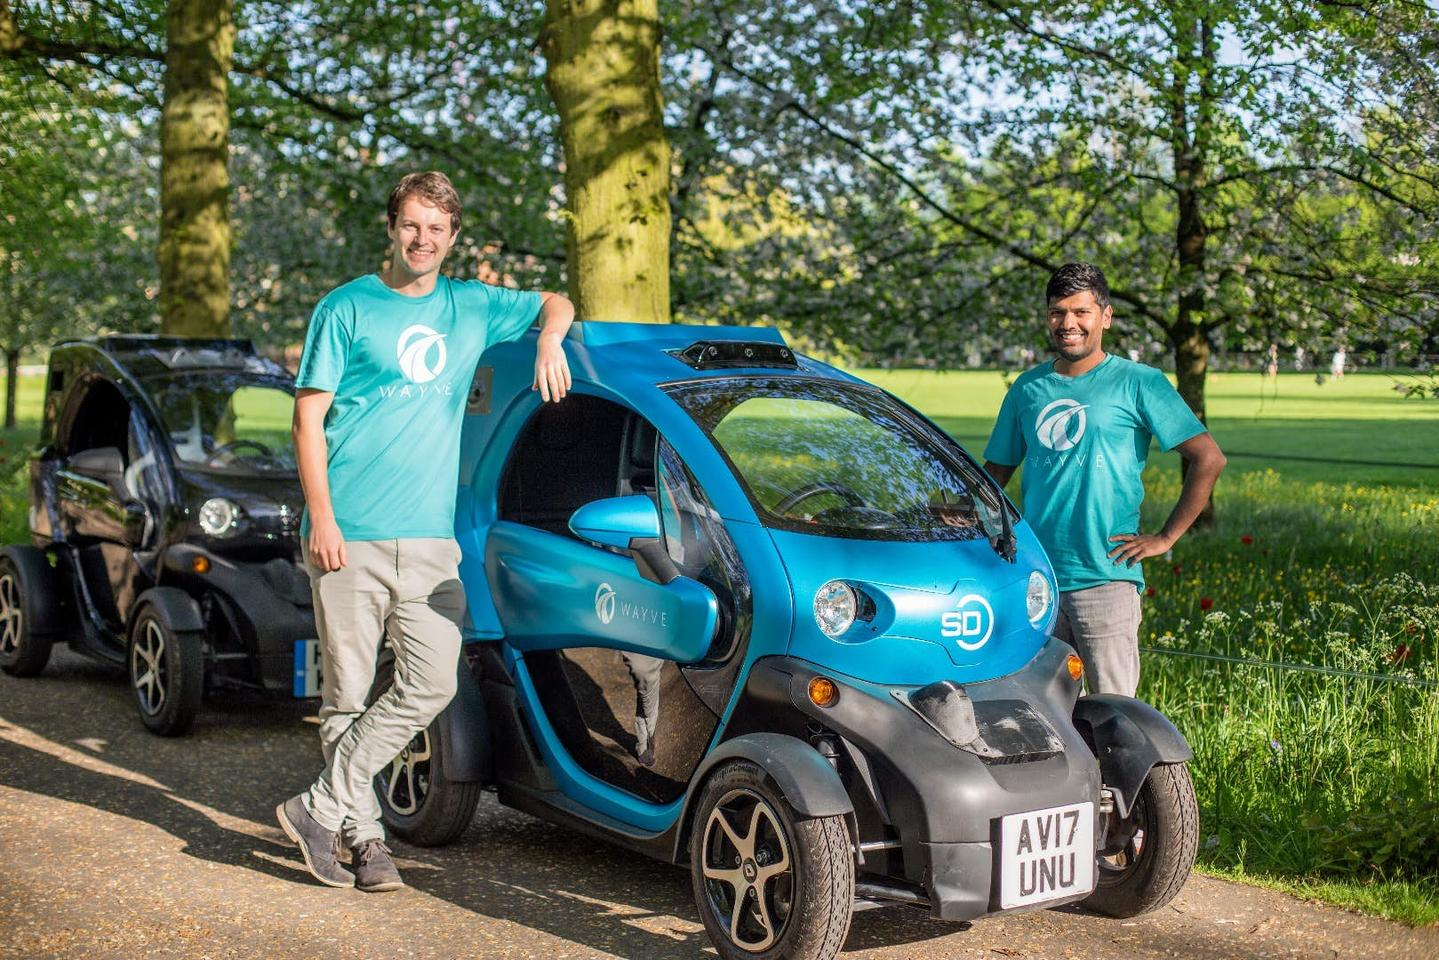 Wayve co-founders Alex Kendall and Amar Shah. Their fast-learning AI autonomous car is now doing short trips on unfamiliar roads in the UK.